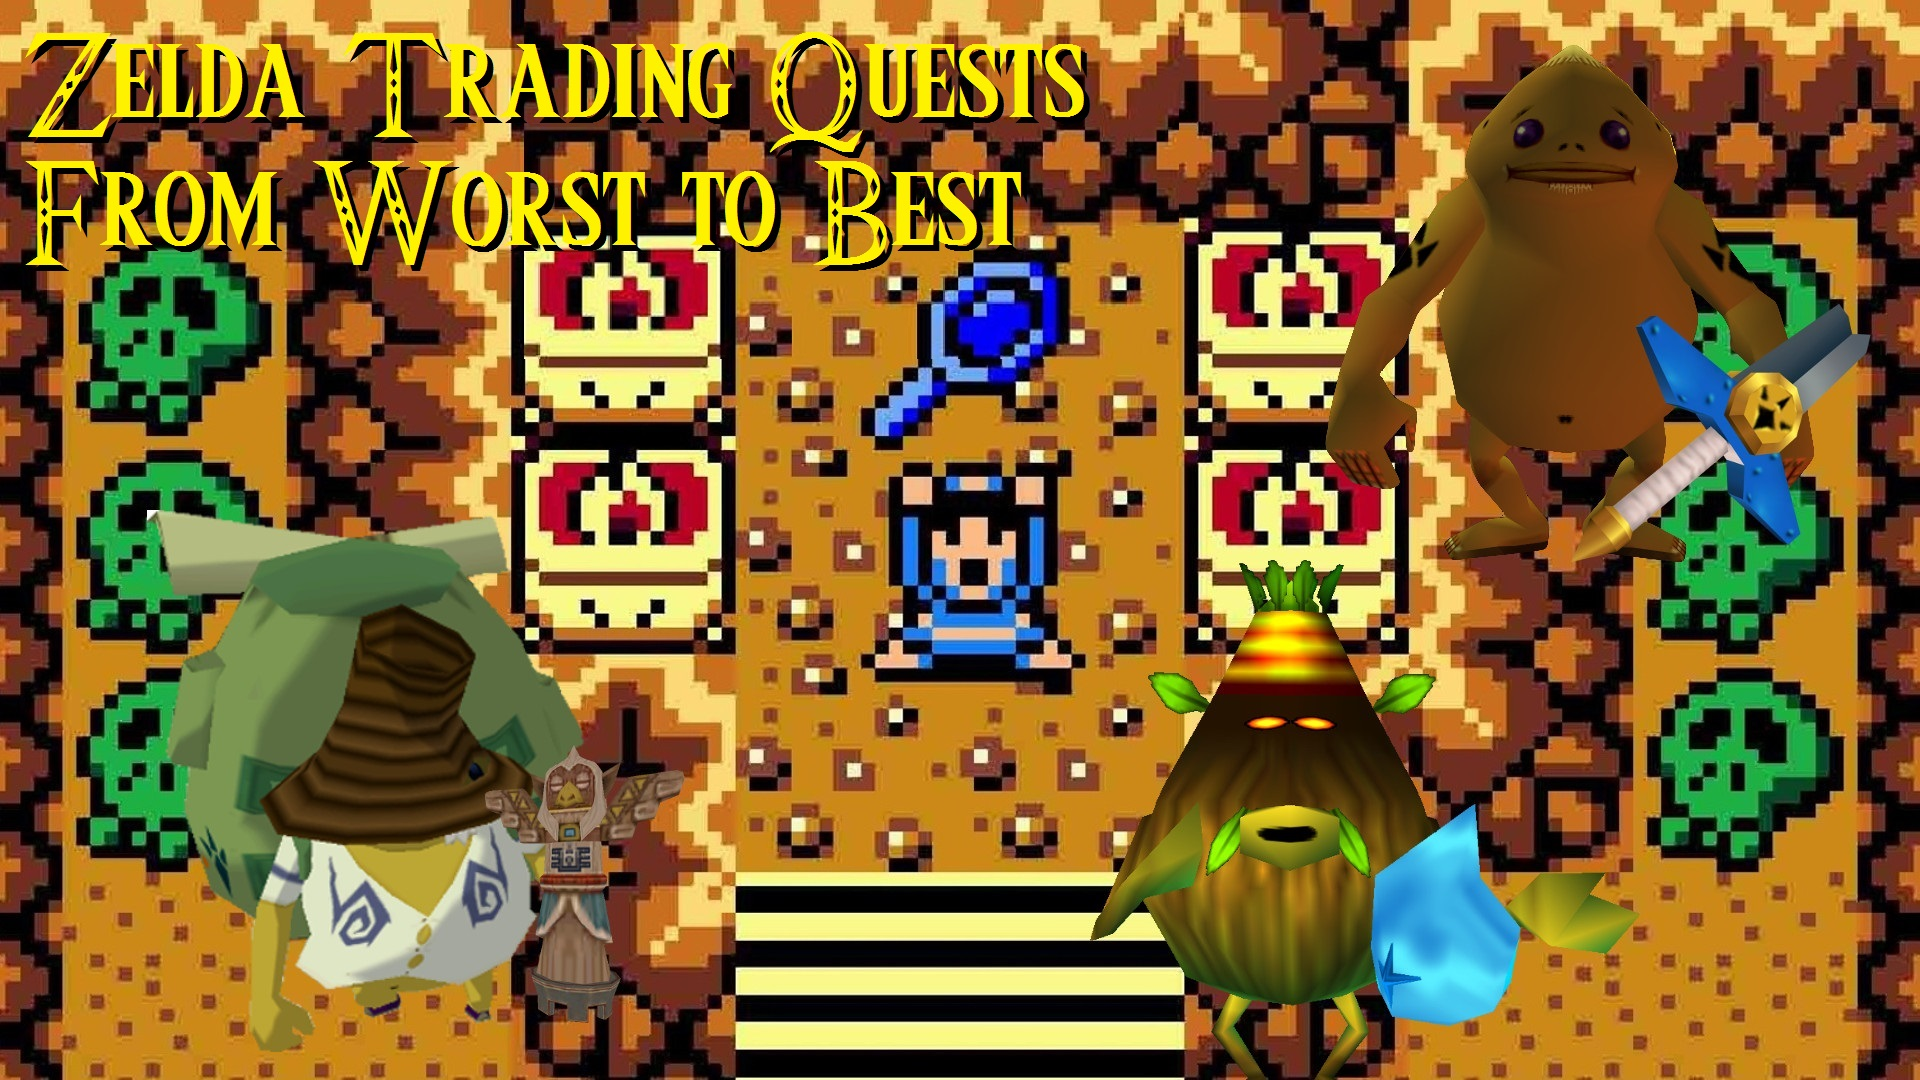 Side Quest Week Ranking Every Zelda Series Trading Sequence